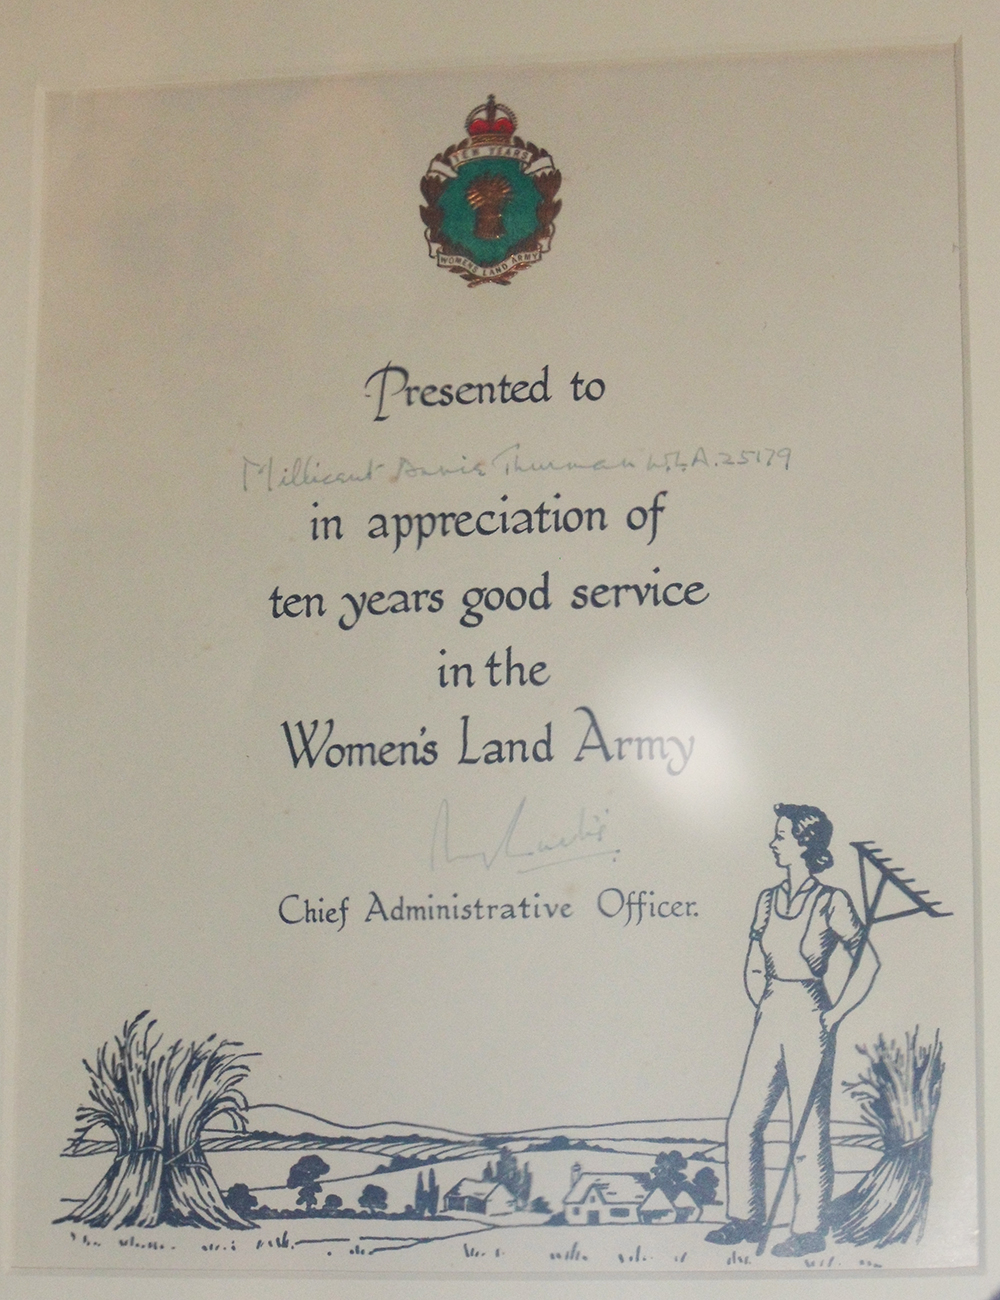 10 Years Good Service Certificate awarded to Land Girls in World War Two. Source: Gressenhall Farm and Workhouse